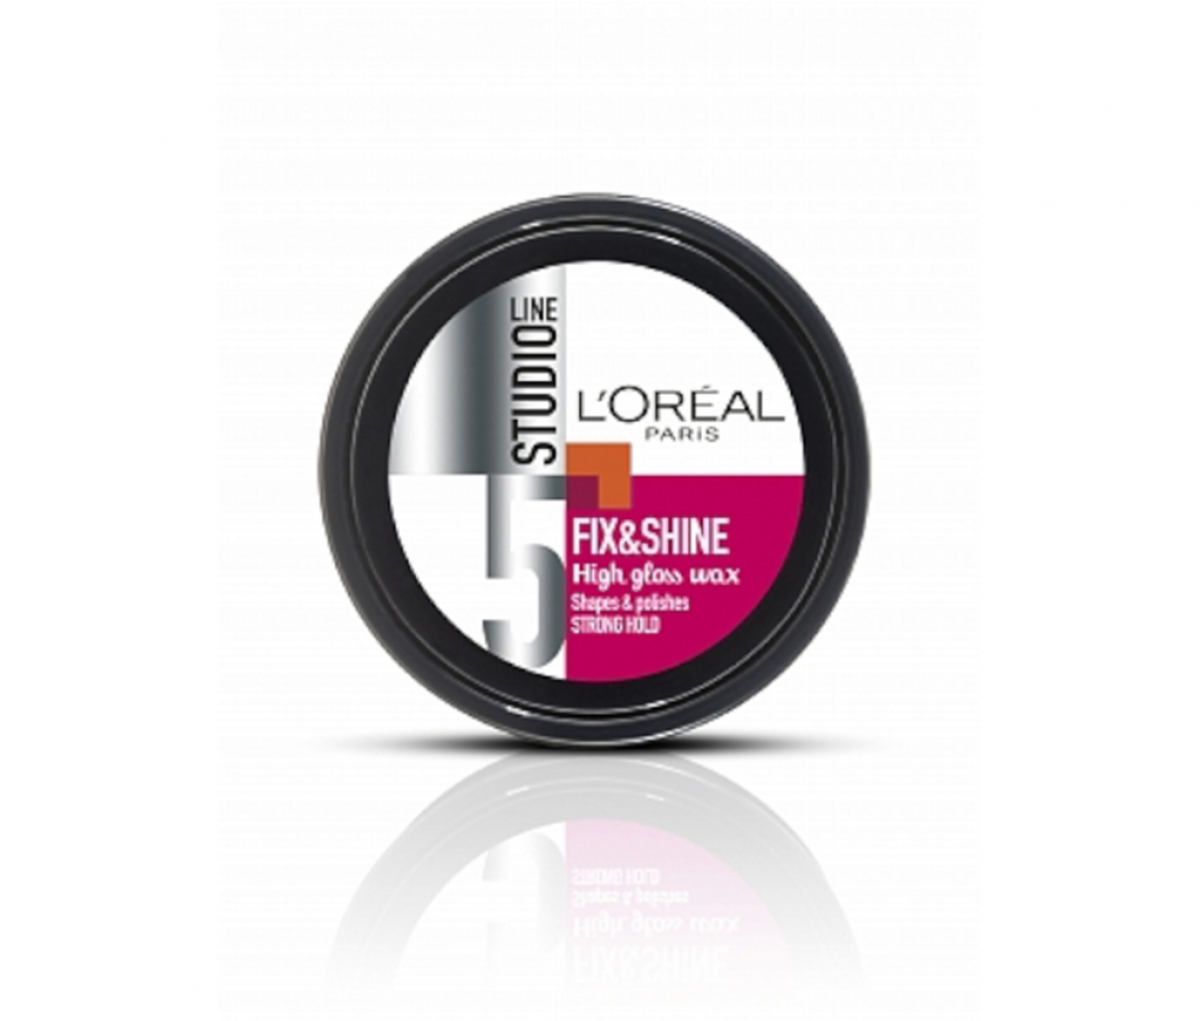 L'Oreal  NR 5 Fix & Shine Strong Hold Wax